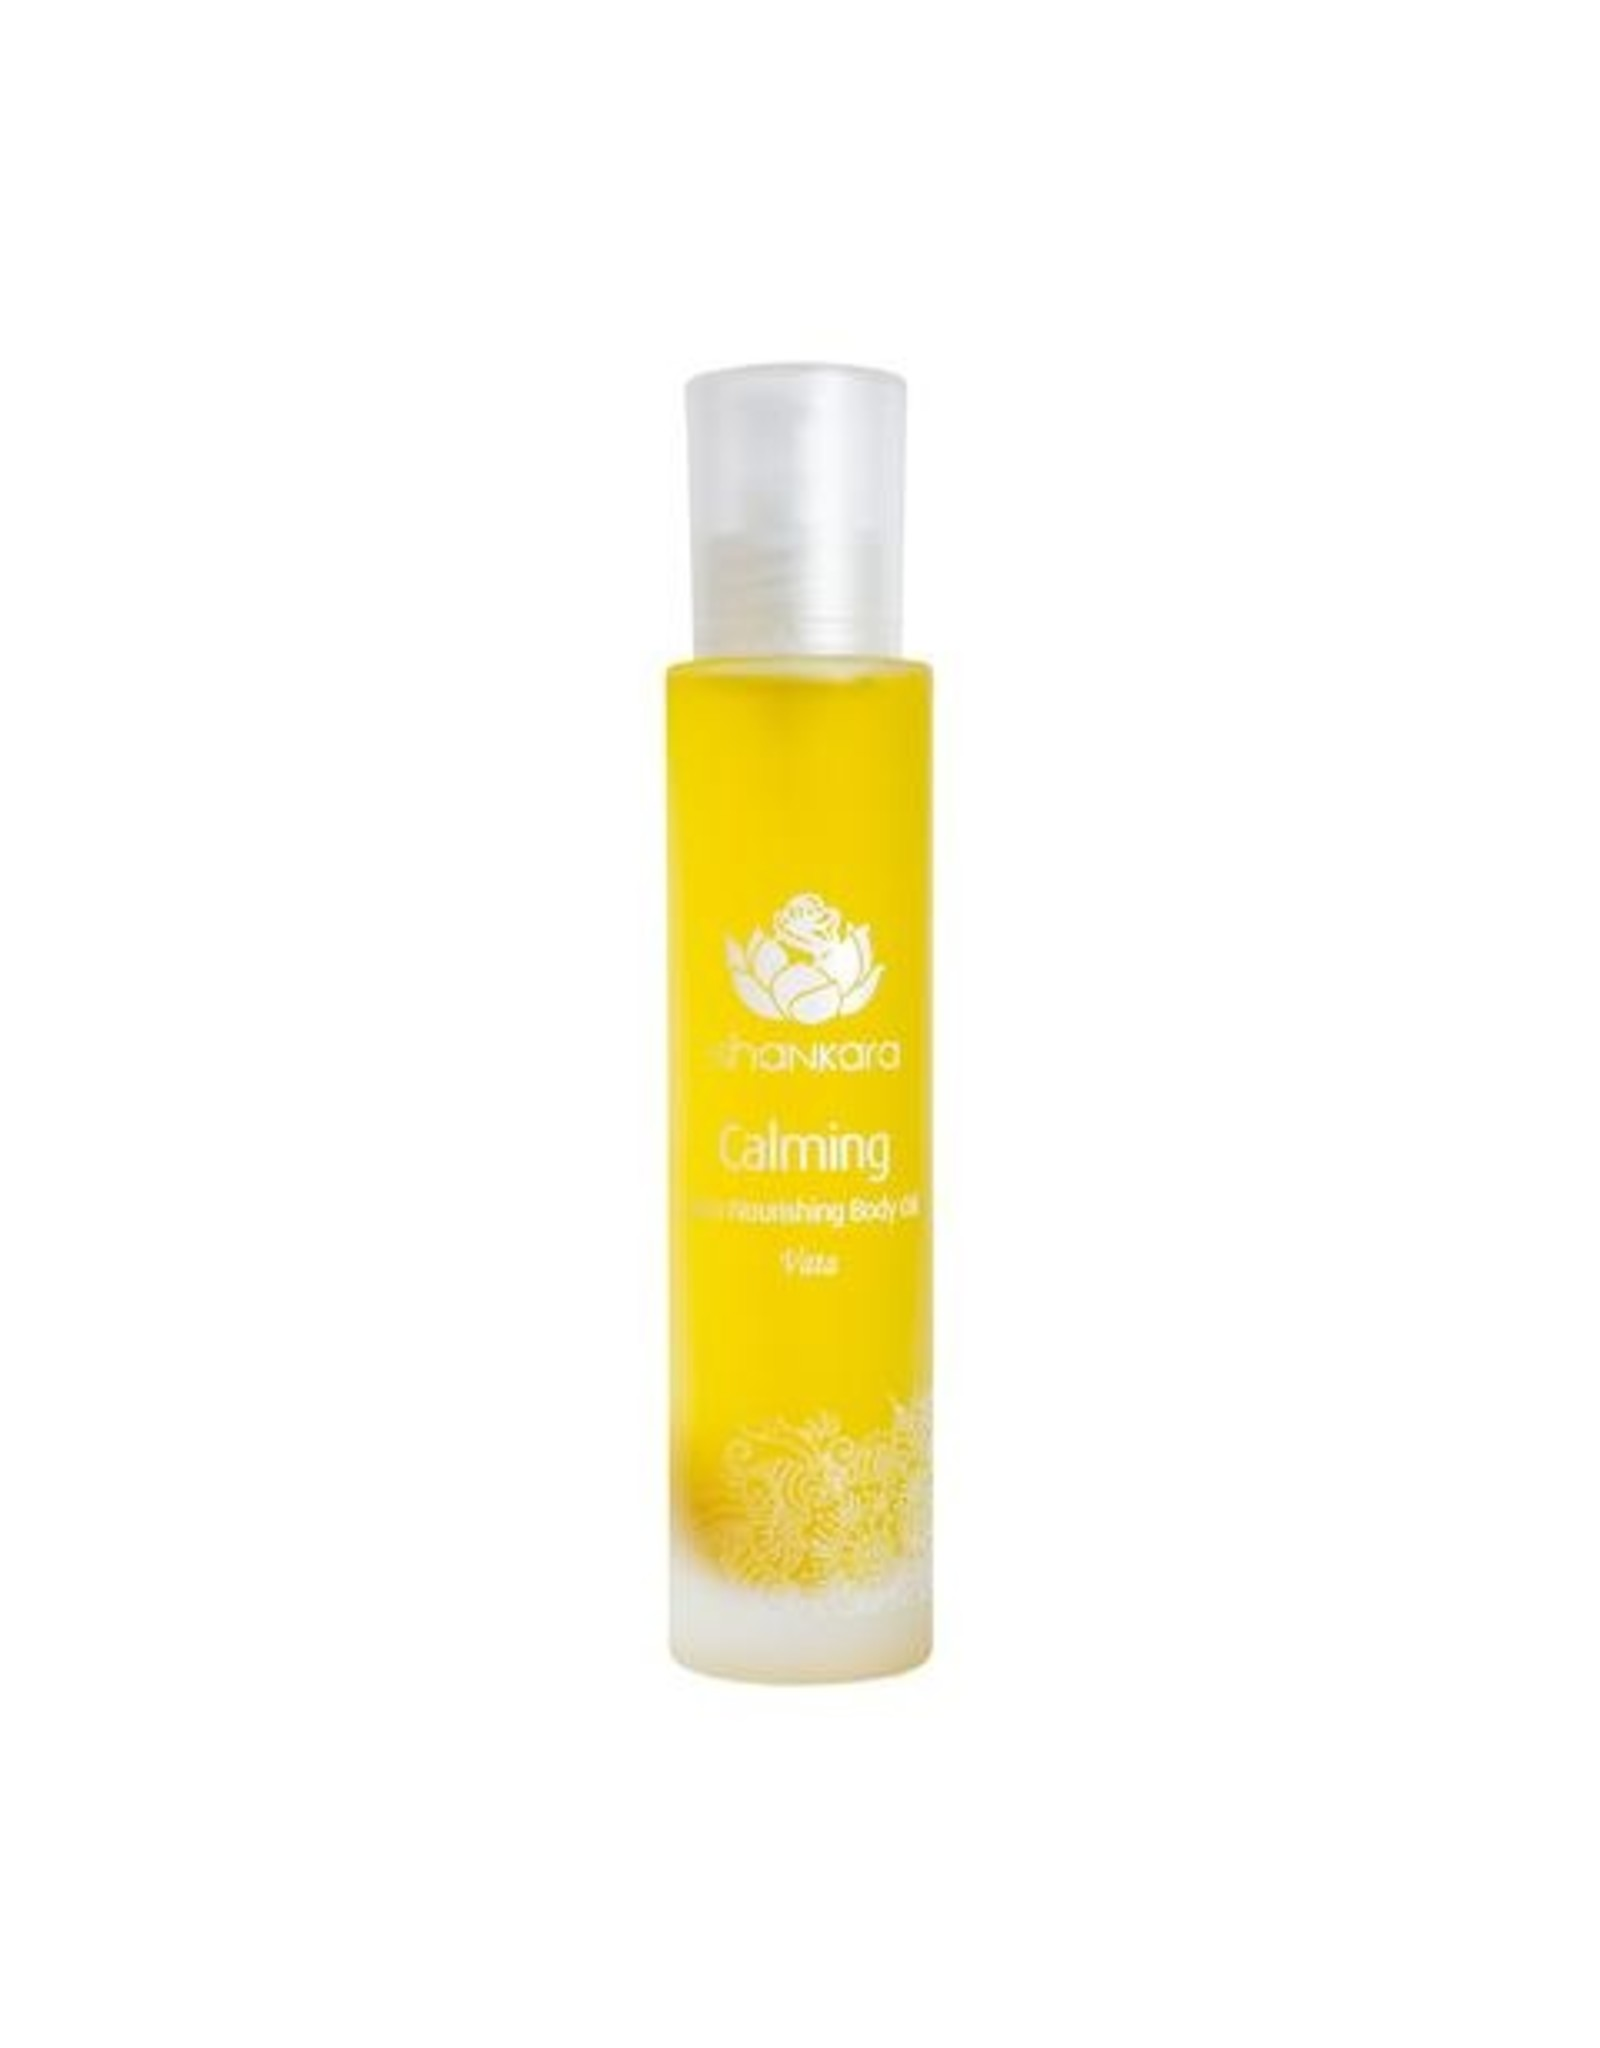 Shankara Calming Body Oil, 30ml of  100ml